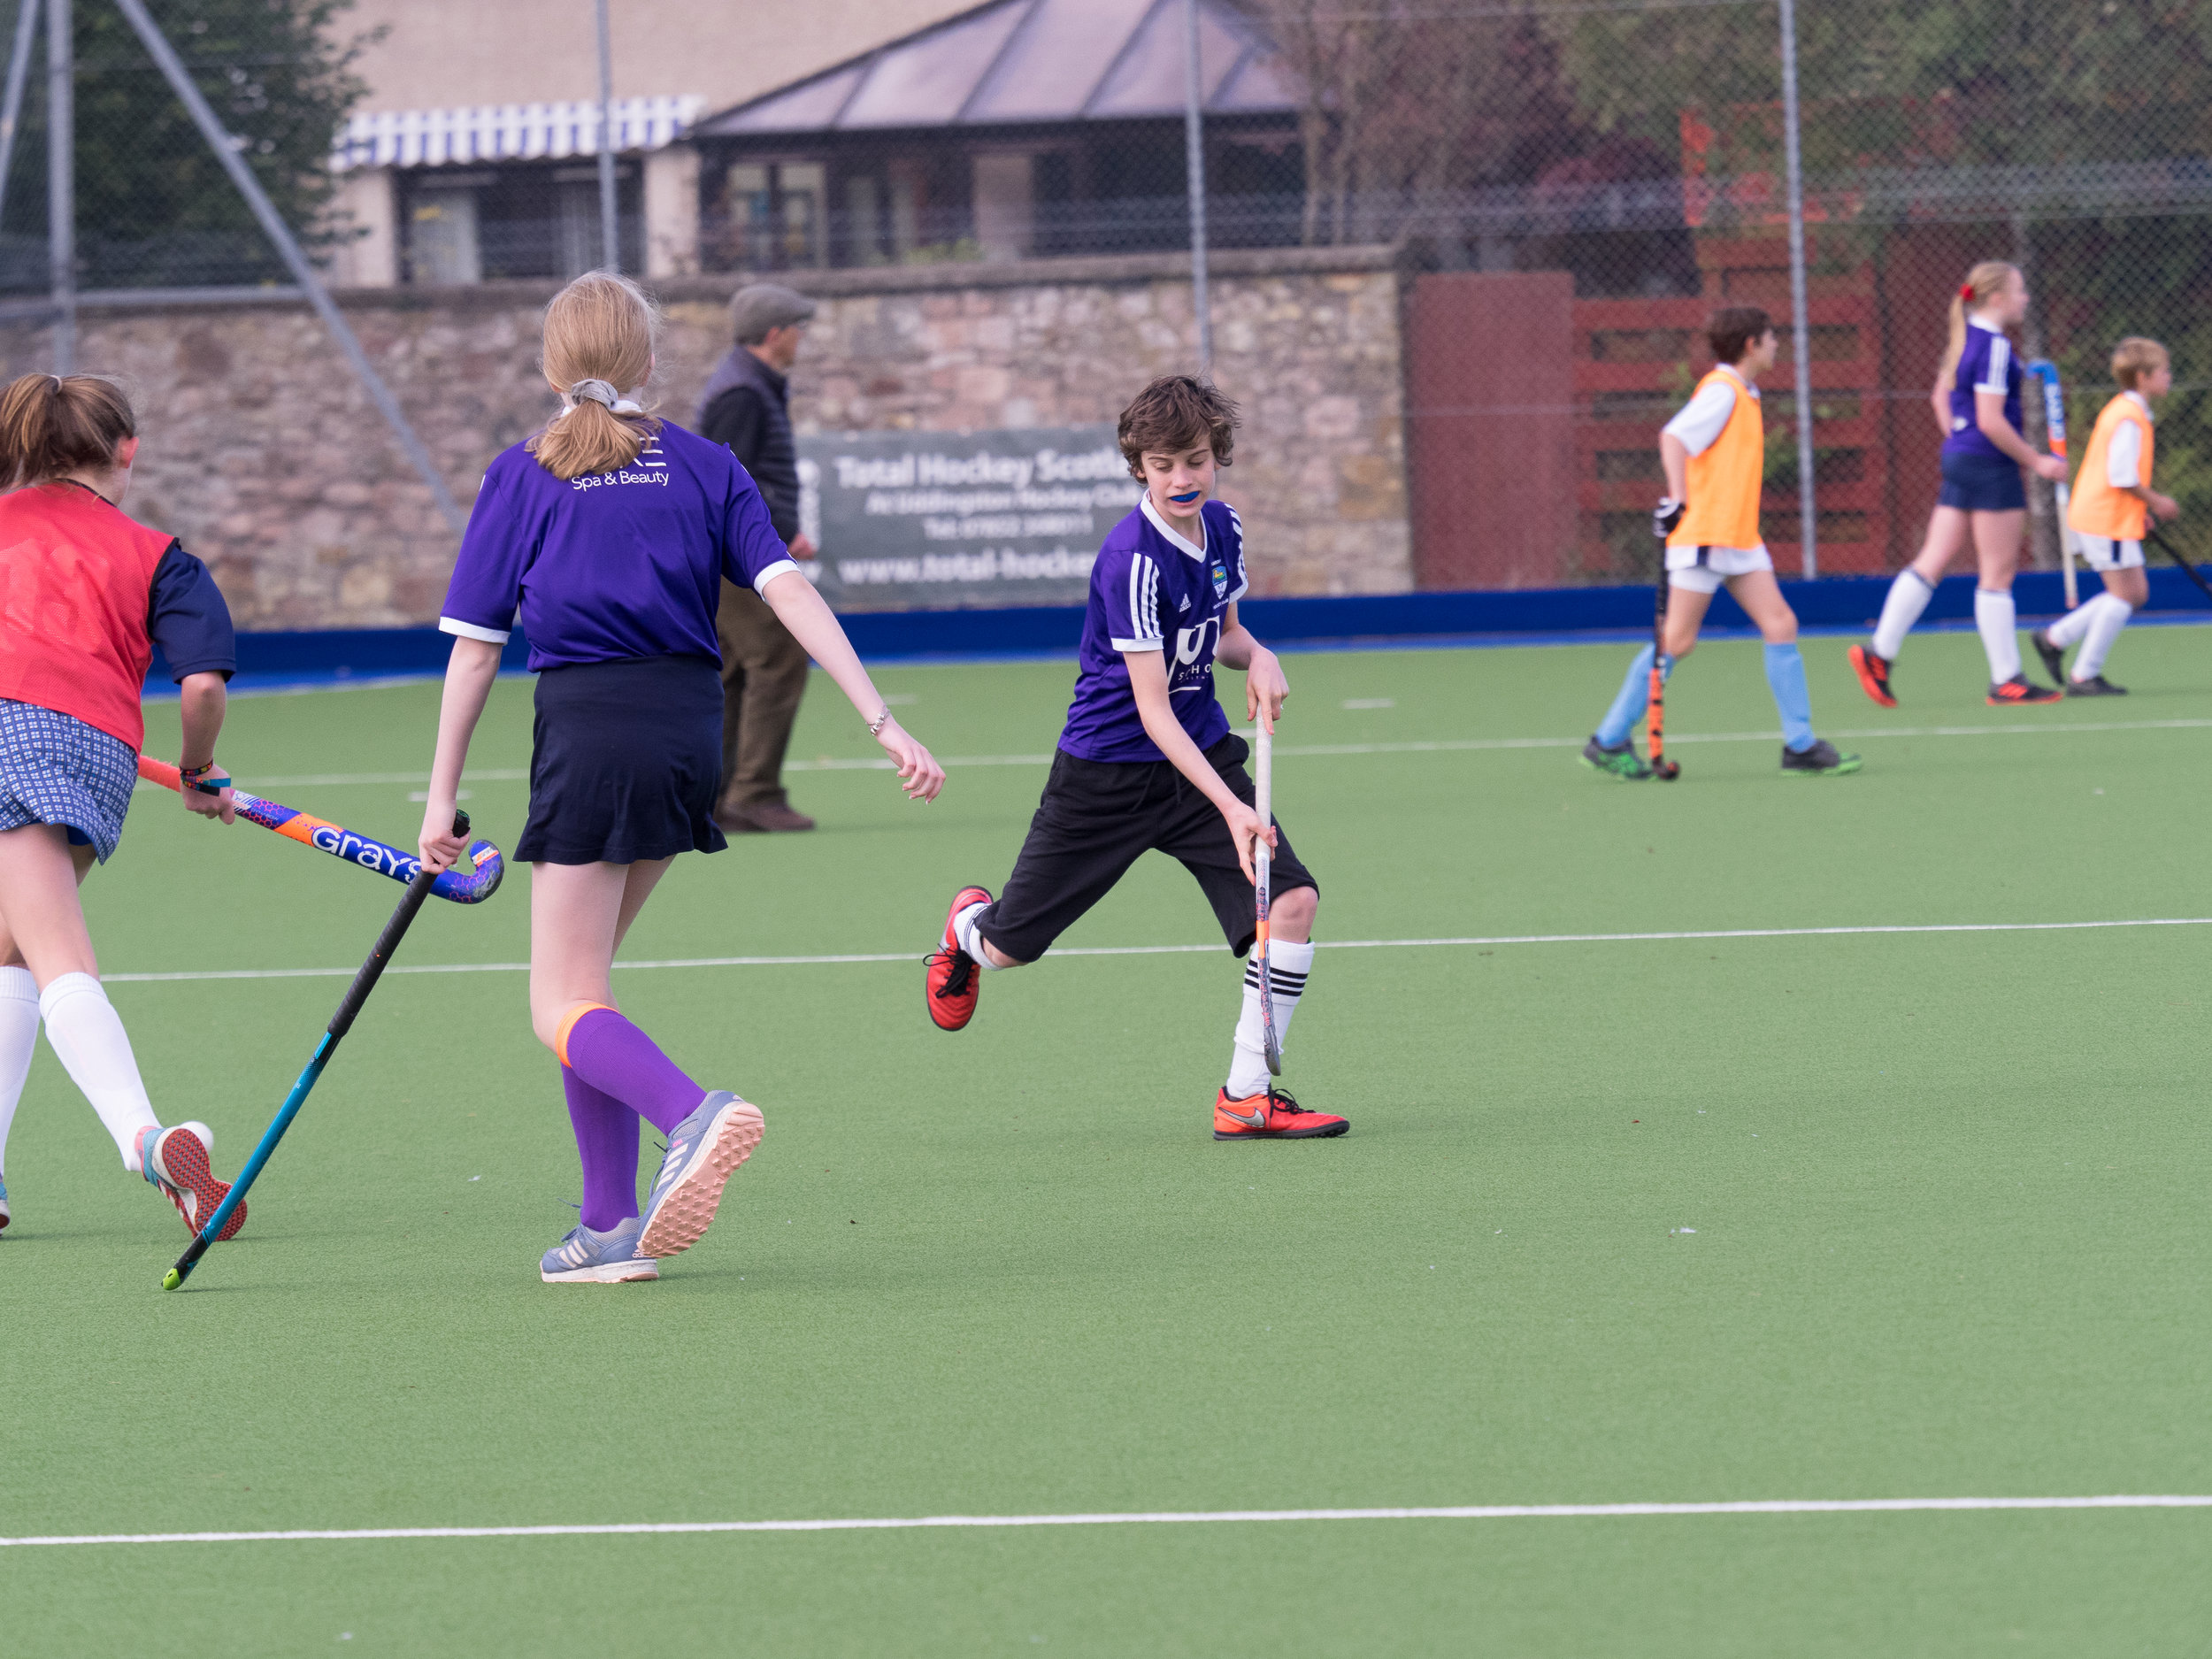 Kinross Hockey Sept 30th-17.jpg